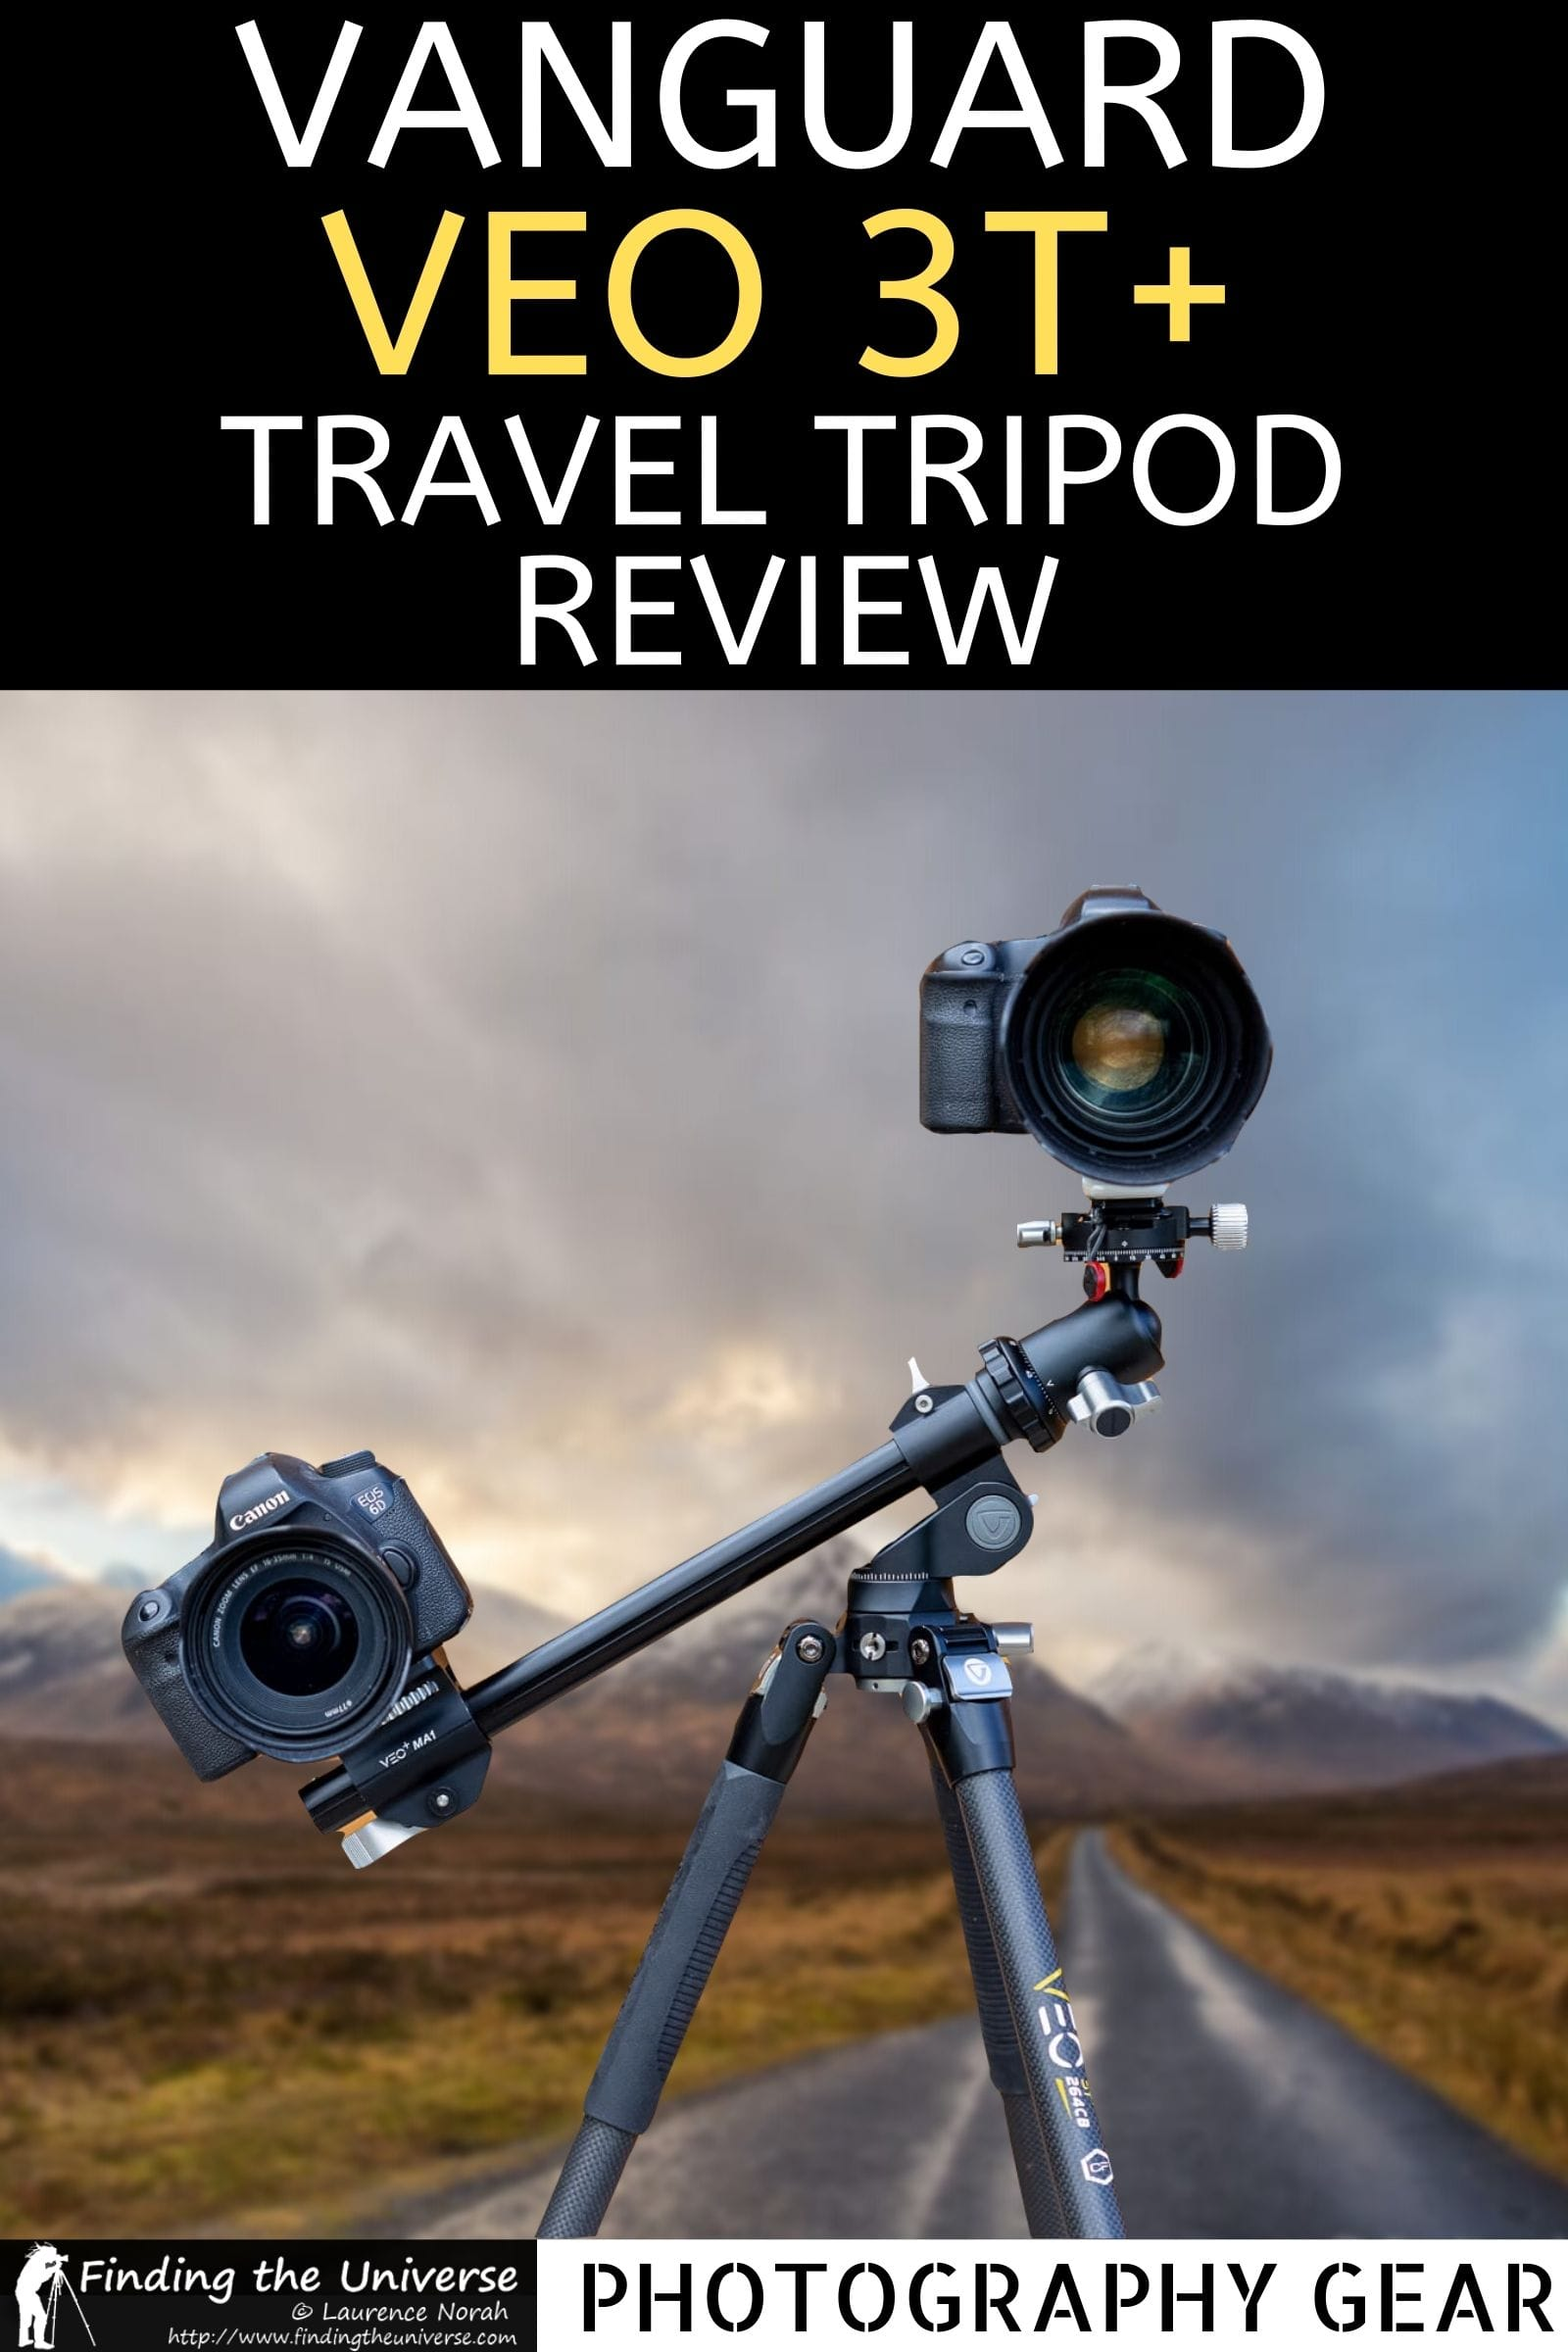 A review of the Vanguard VEO 3T+ 264CB travel tripod. Everything you need to know to decide if this carbon fibre travel tripod is for you!